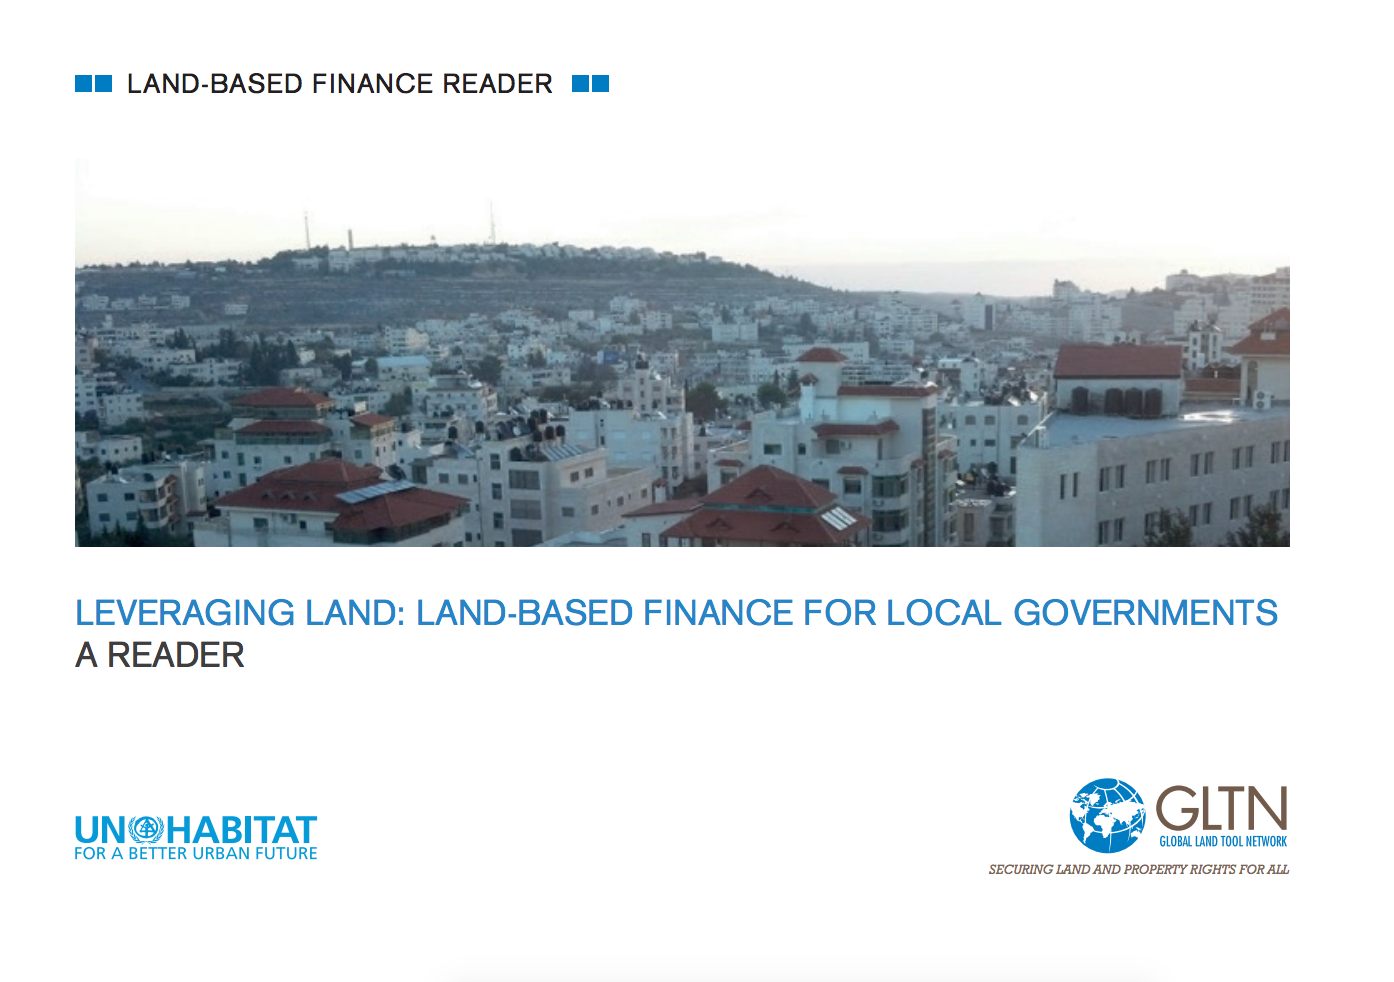 Leveraging Land: Land-based Finance for Local Governments - A Reader cover image